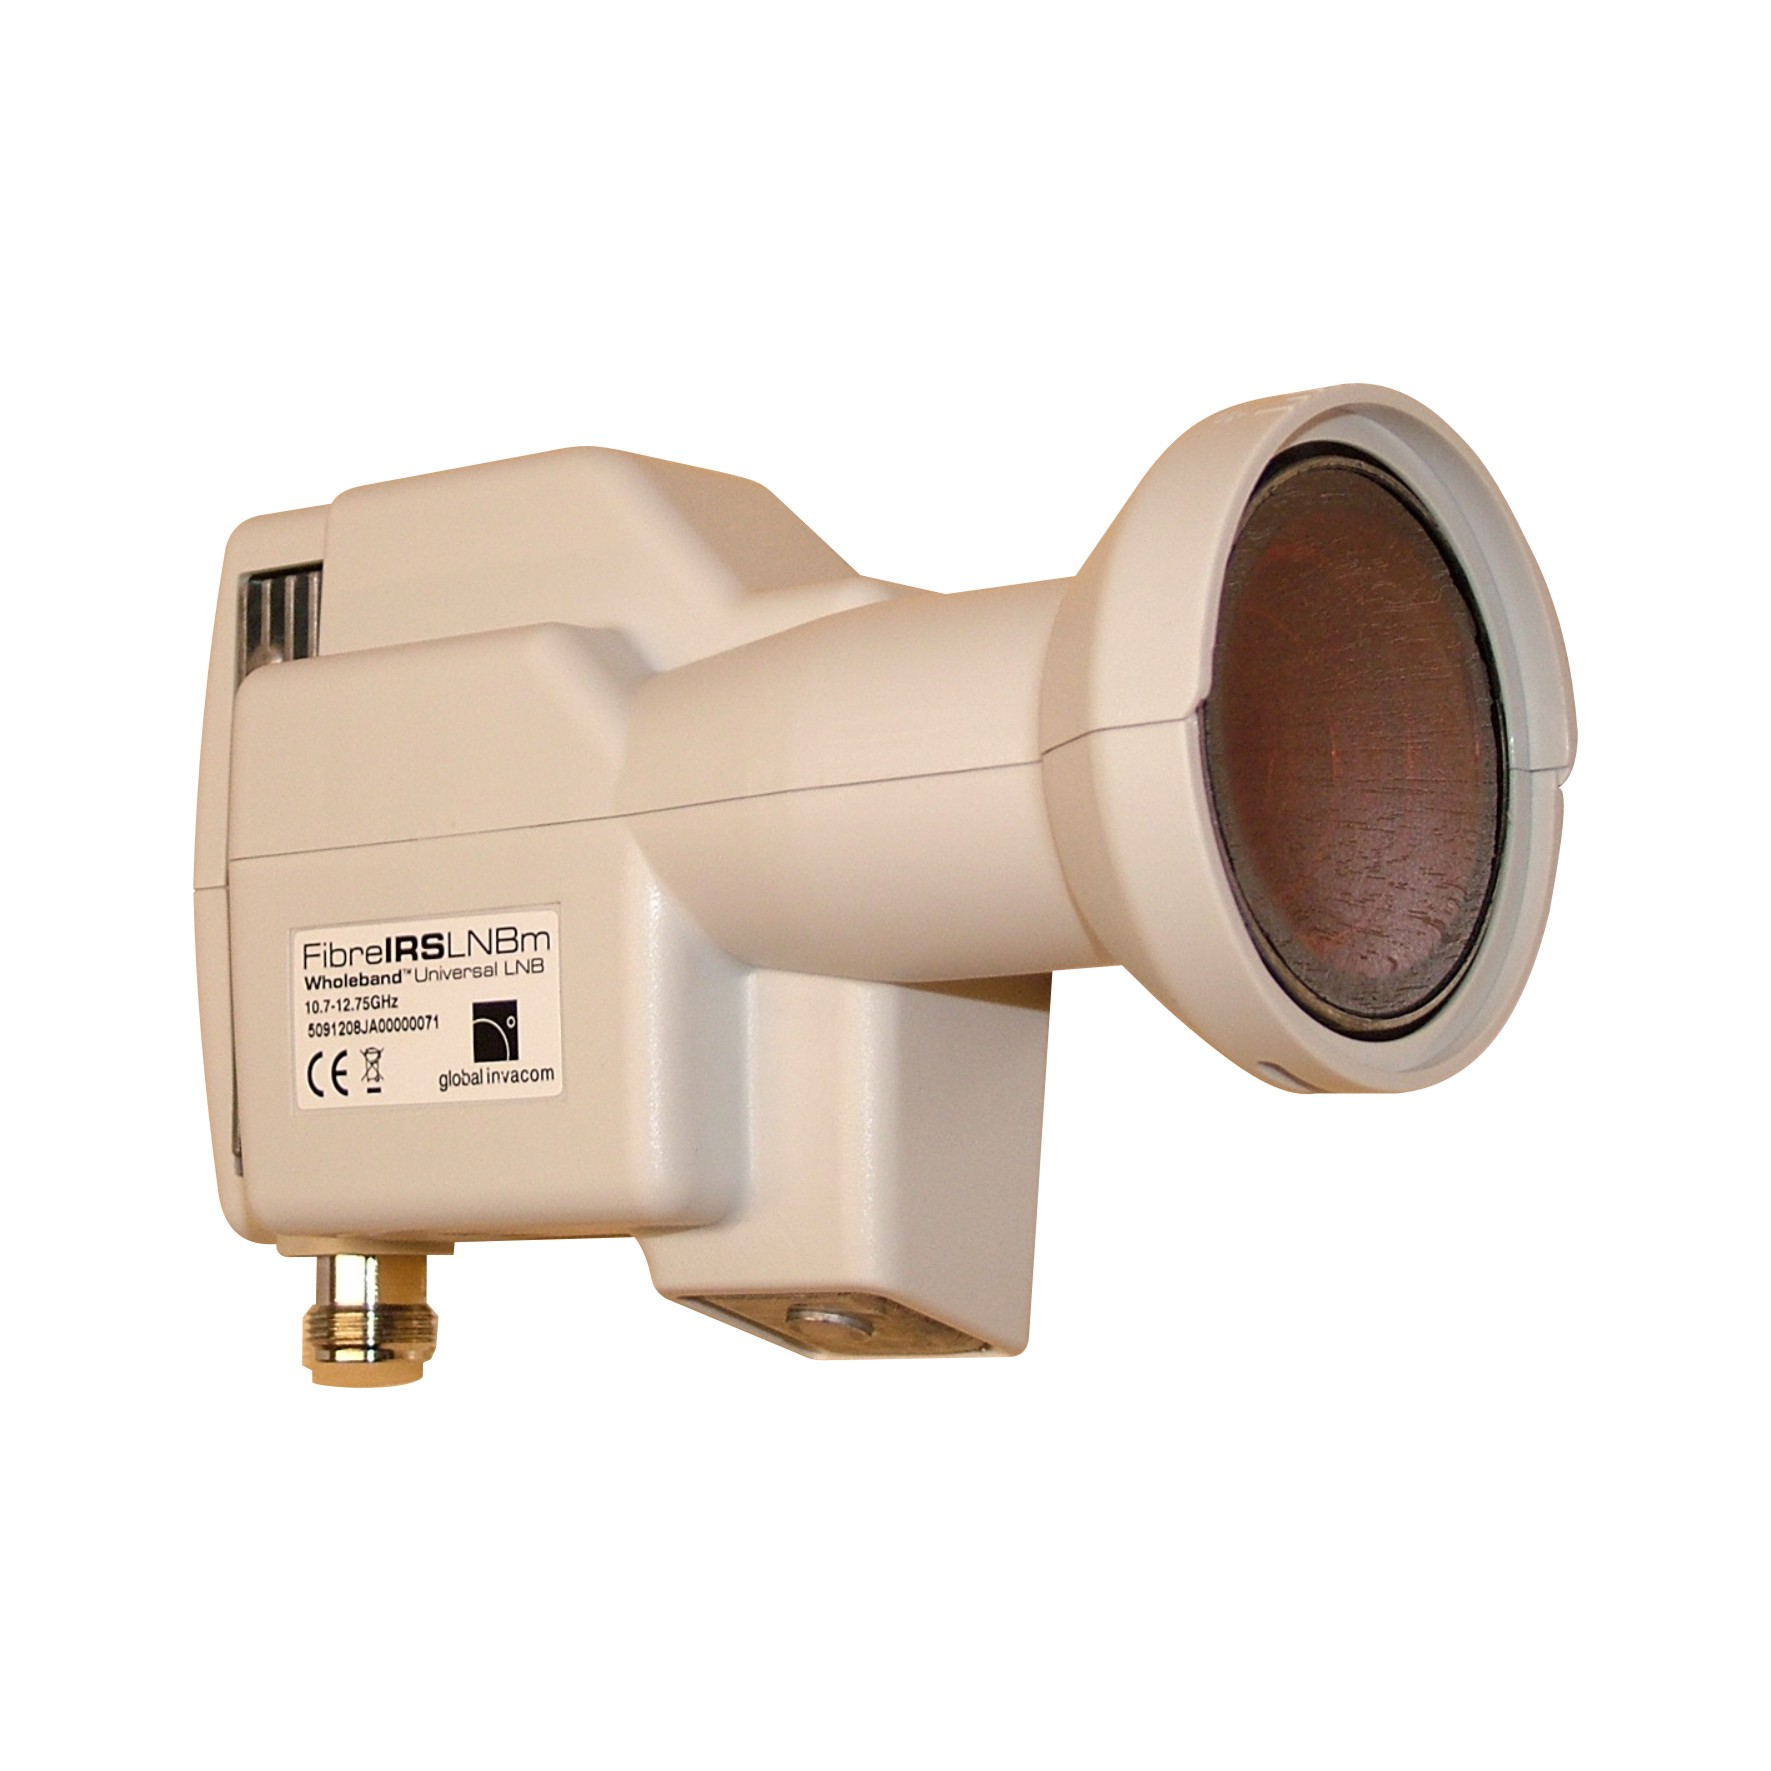 GI - FibreIRS® Wholeband LNB